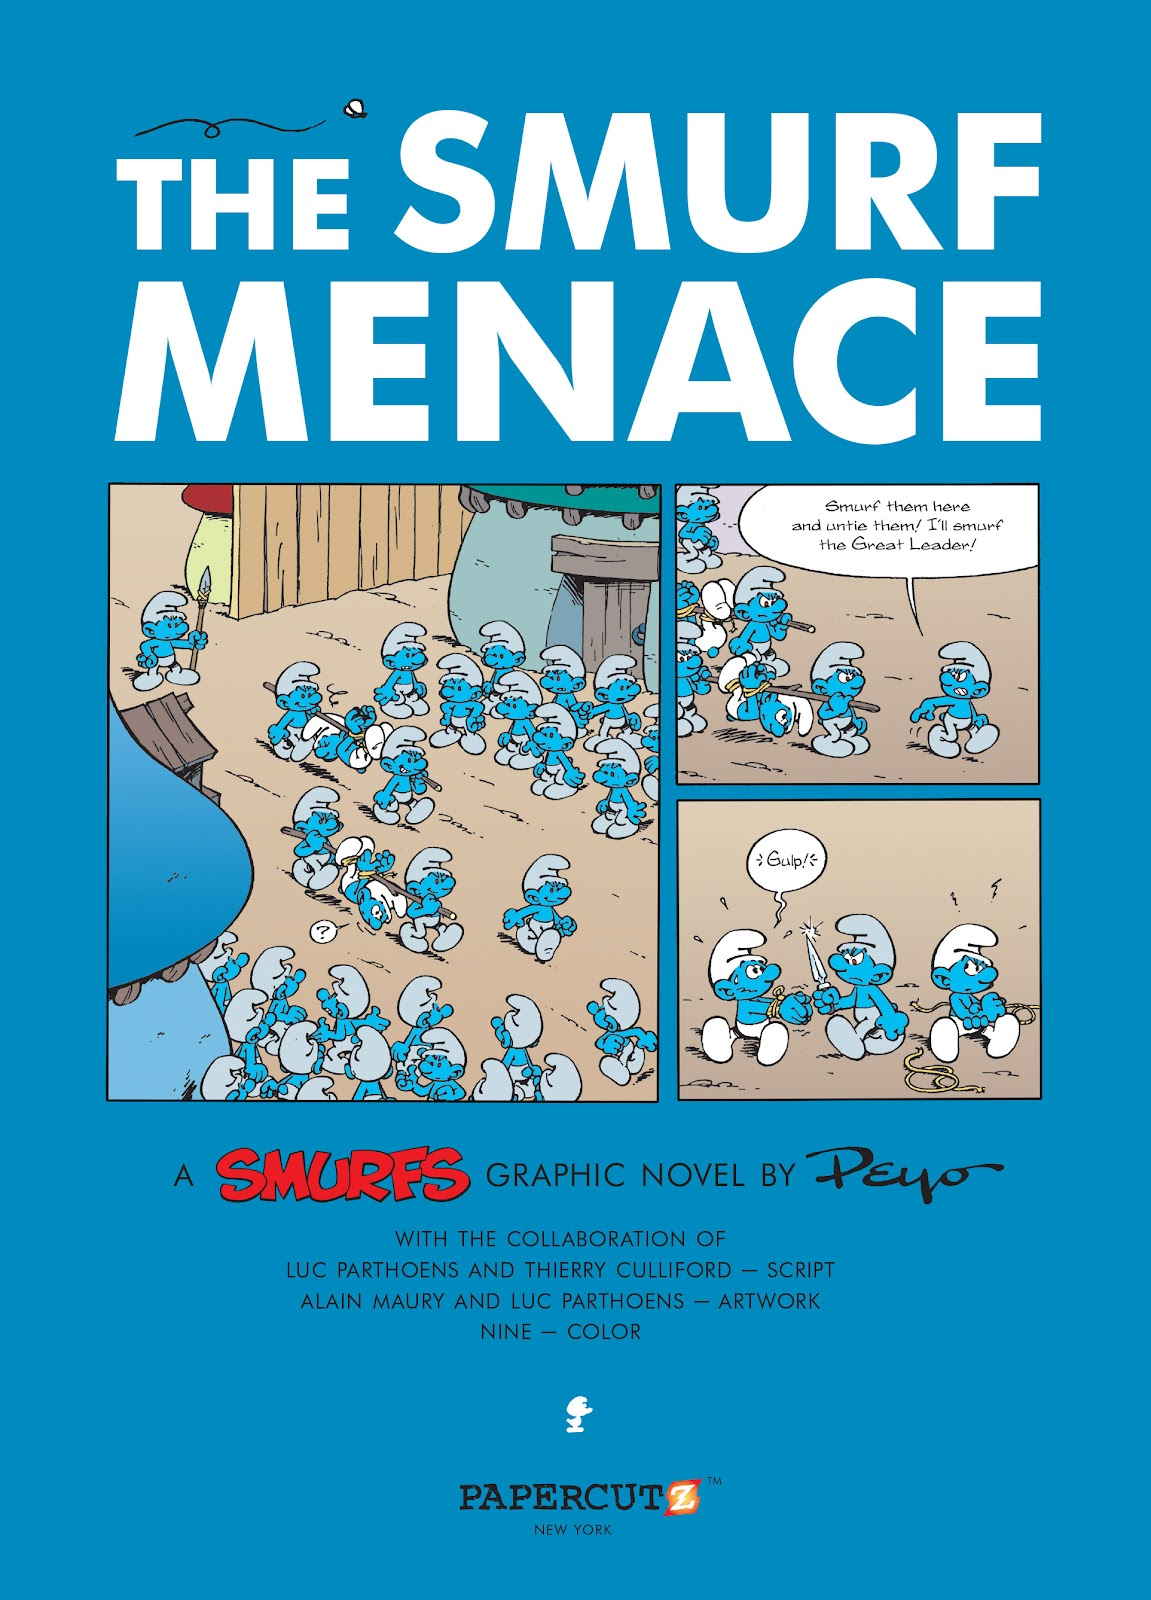 Read online The Smurfs comic -  Issue #22 - 4